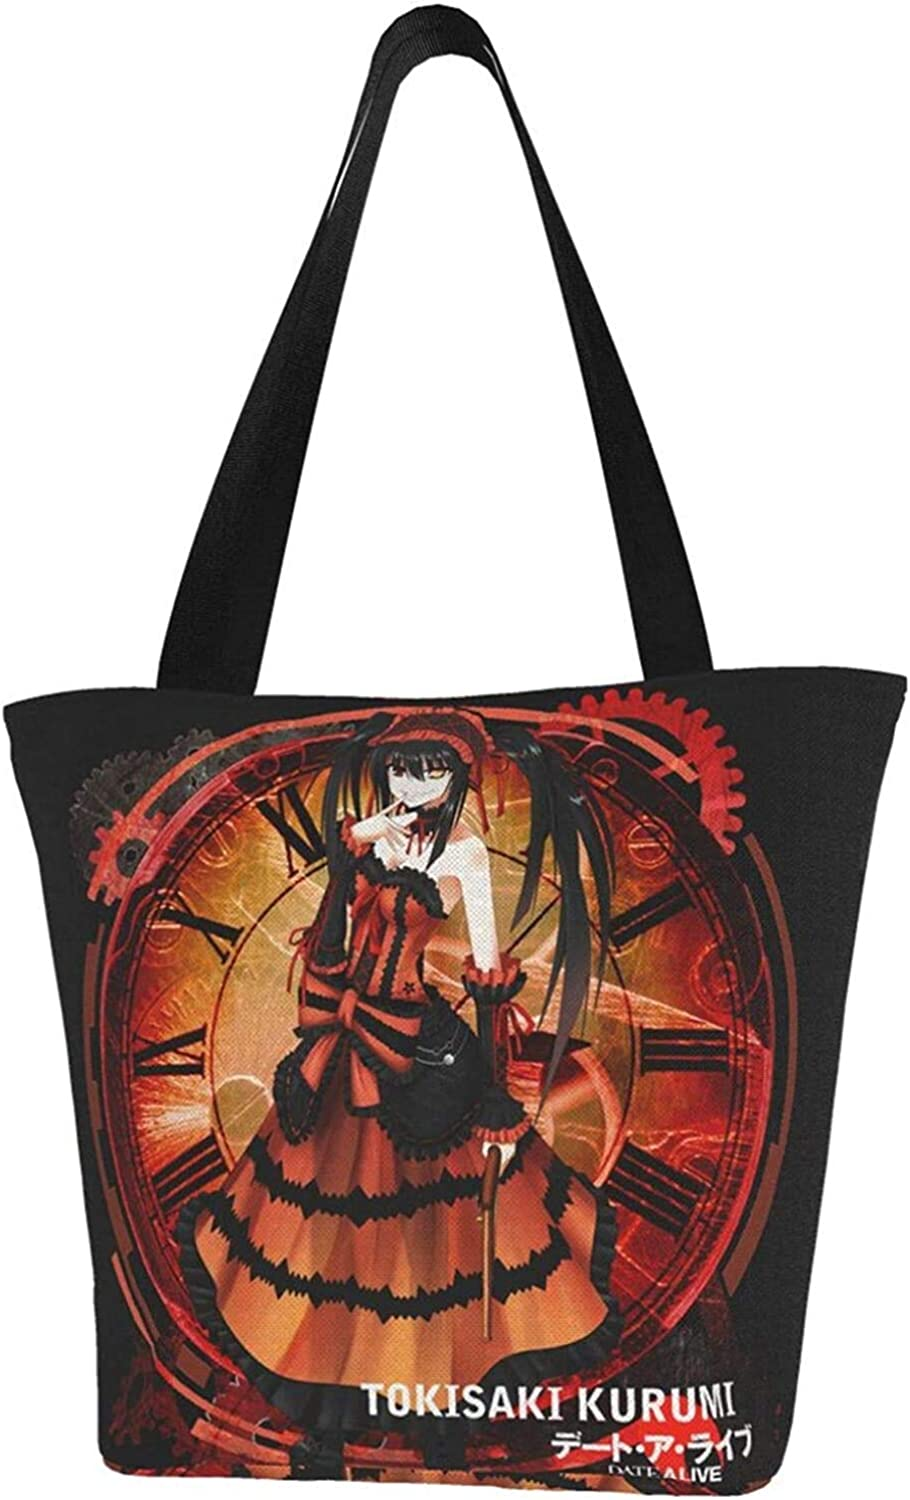 Nigel Tomm Haikyuu - Tobio Kageyama Canvas Tote Bag con cremallera Reutilizable Shopping Grocery Bags Bolsos para regalo Fun Art Cosplay Travel